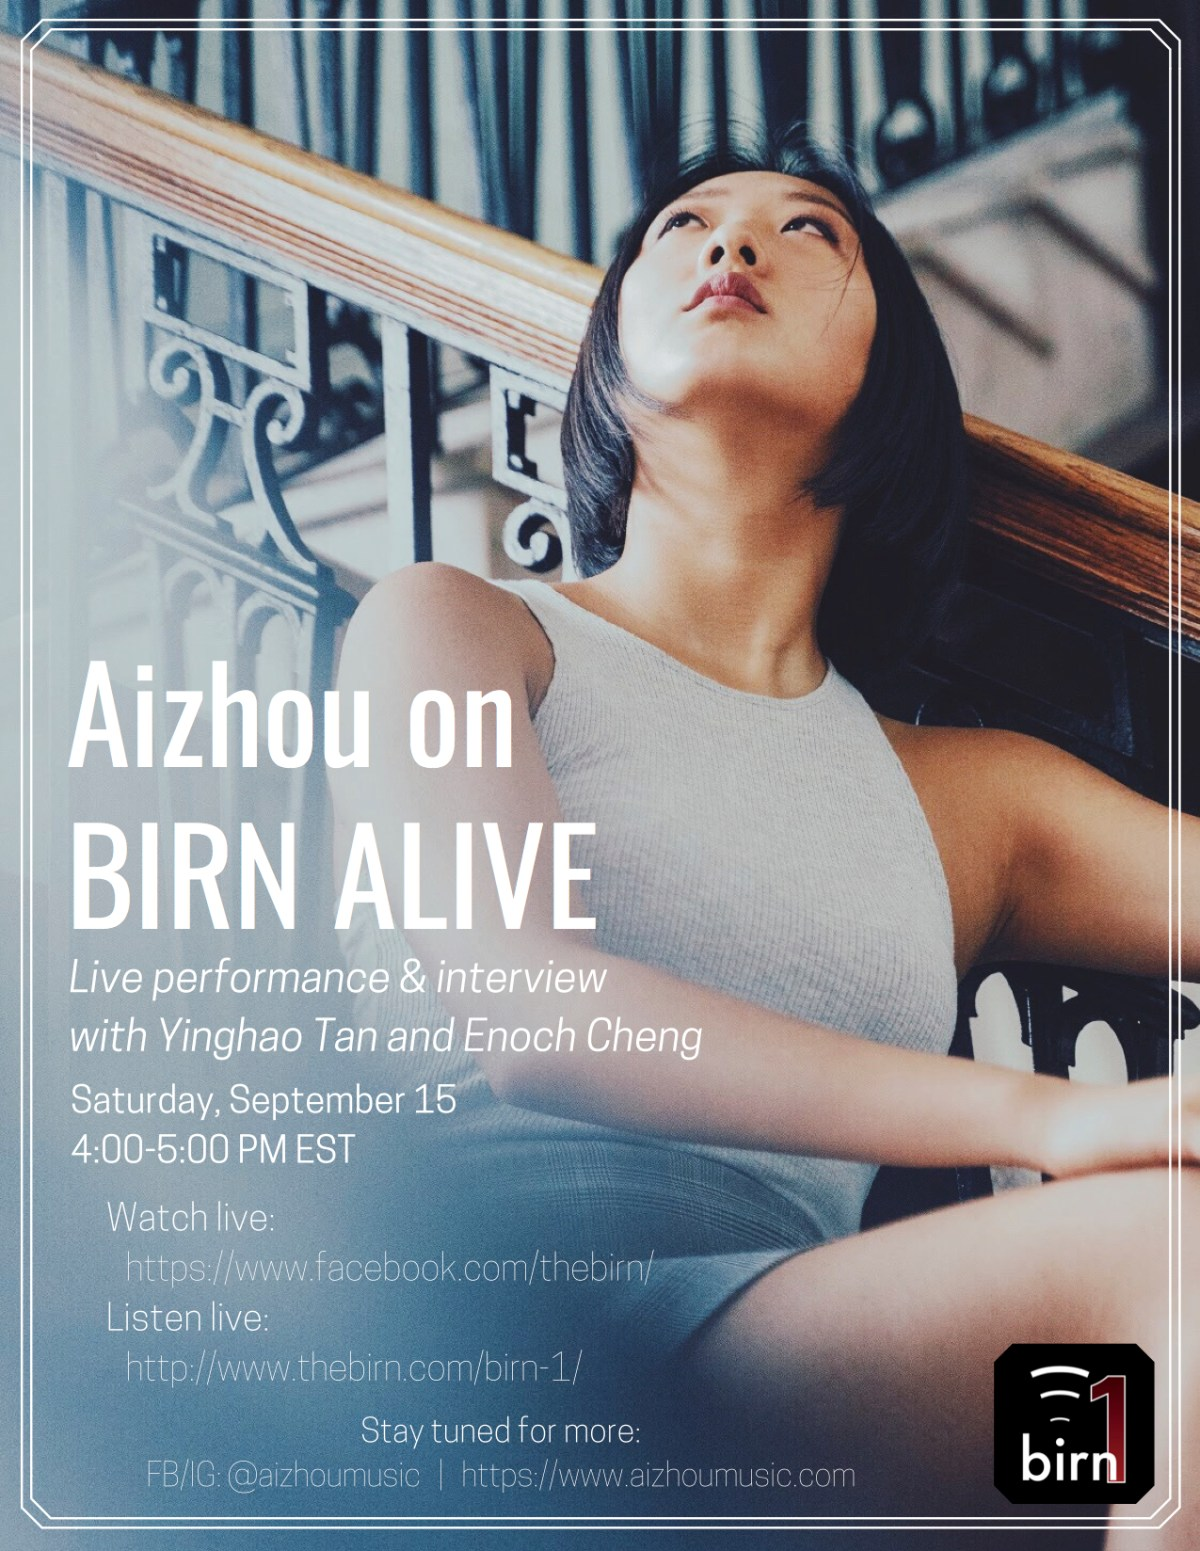 Aizhou to Appear on BIRN Alive